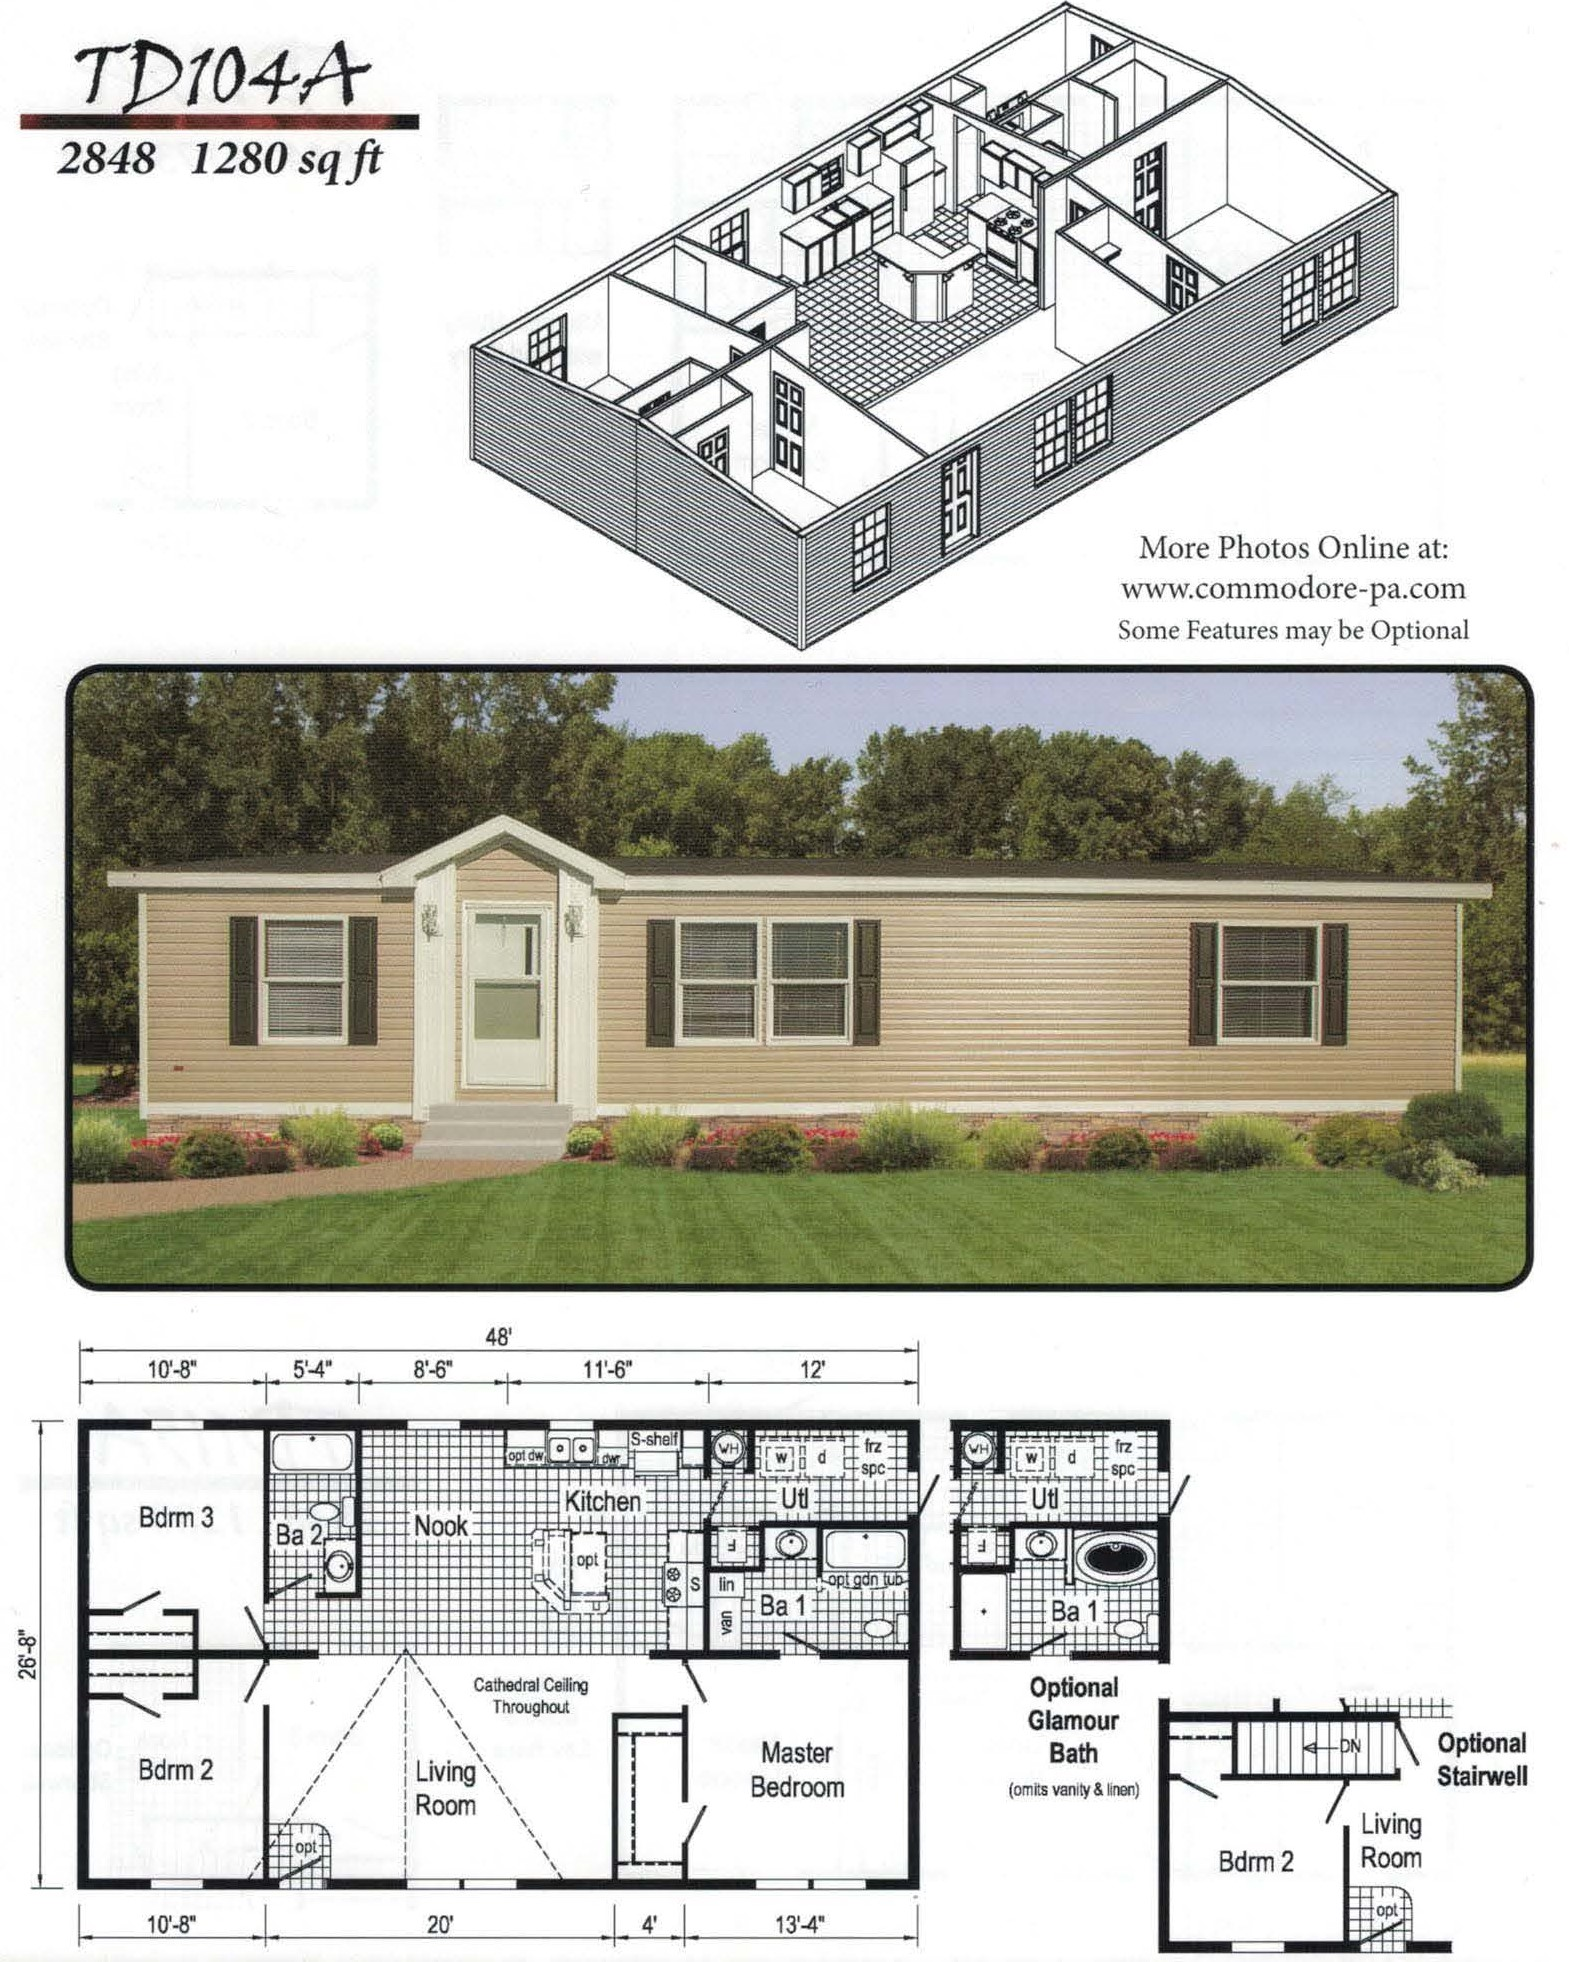 Commodore Homes from AGL Homes  Mobile Homes, NY, Double-wide